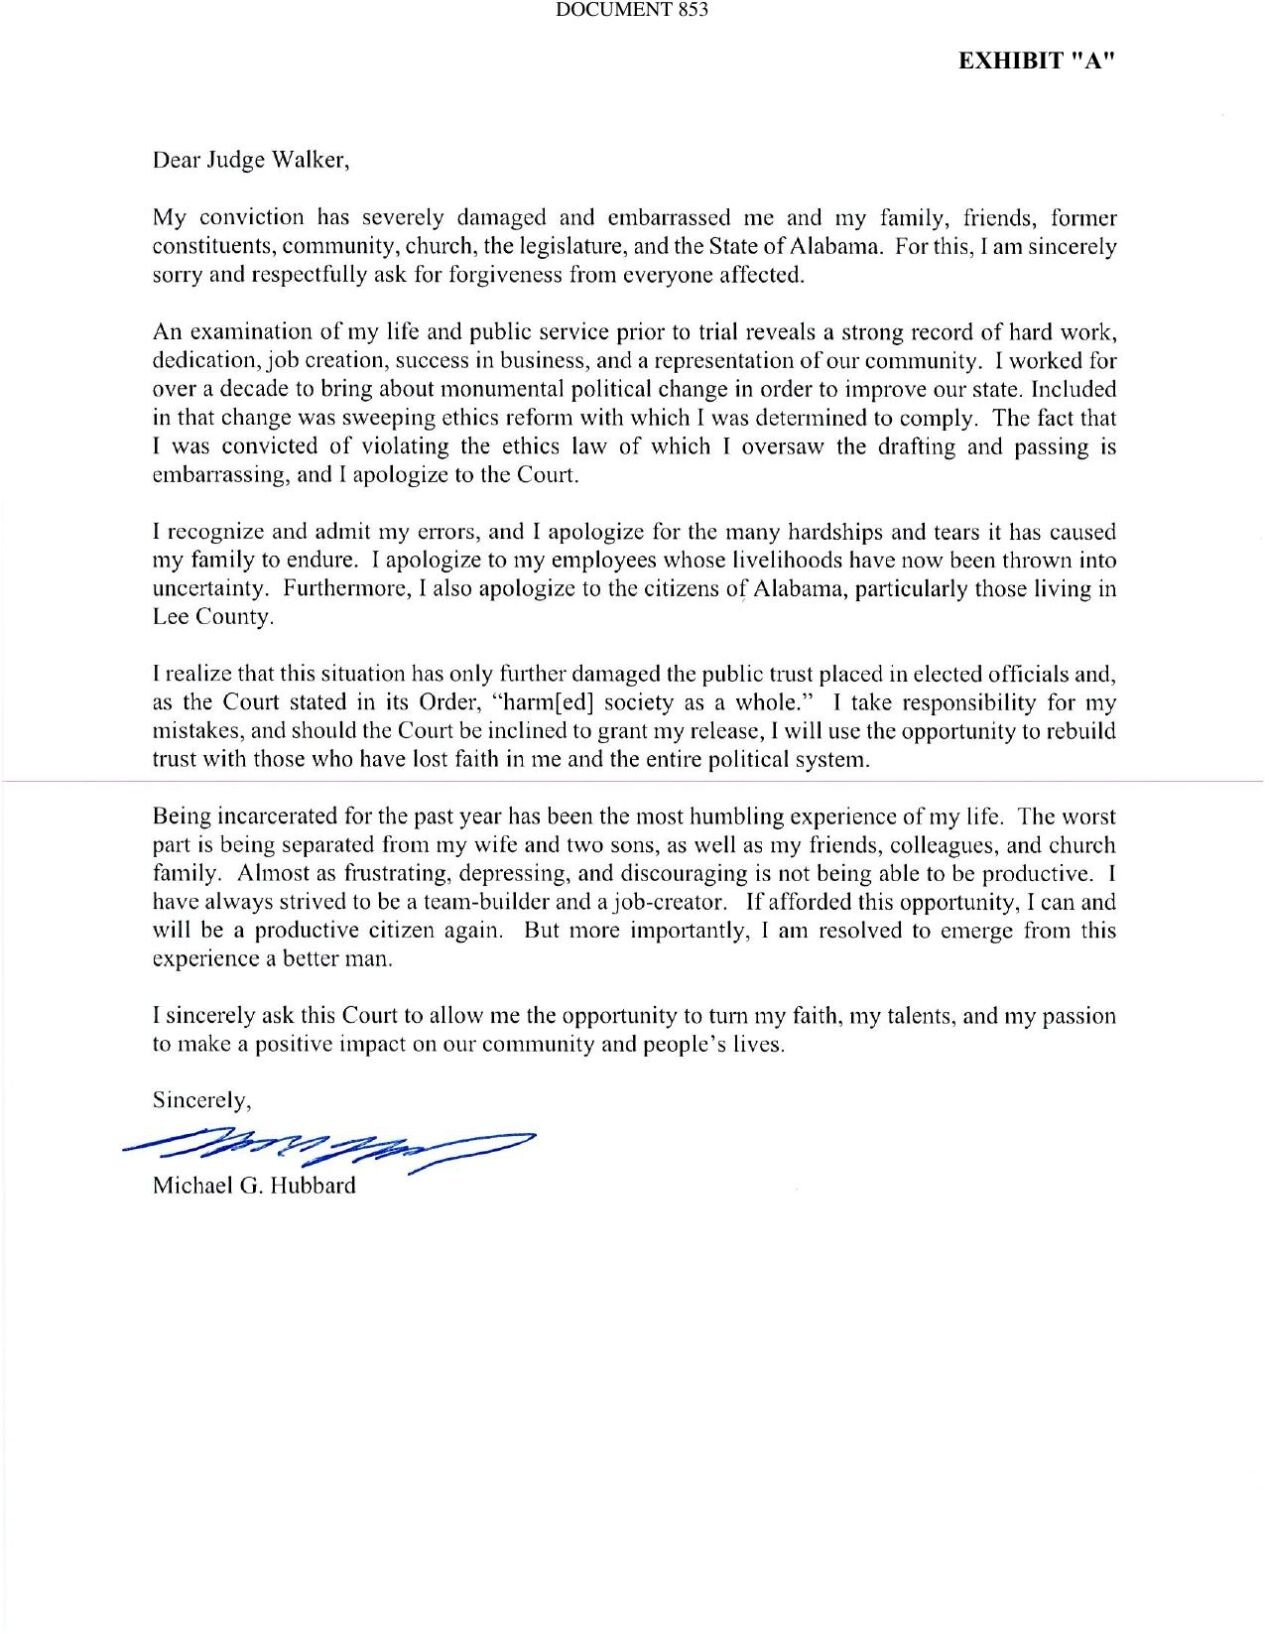 Hubbard's letter to the court